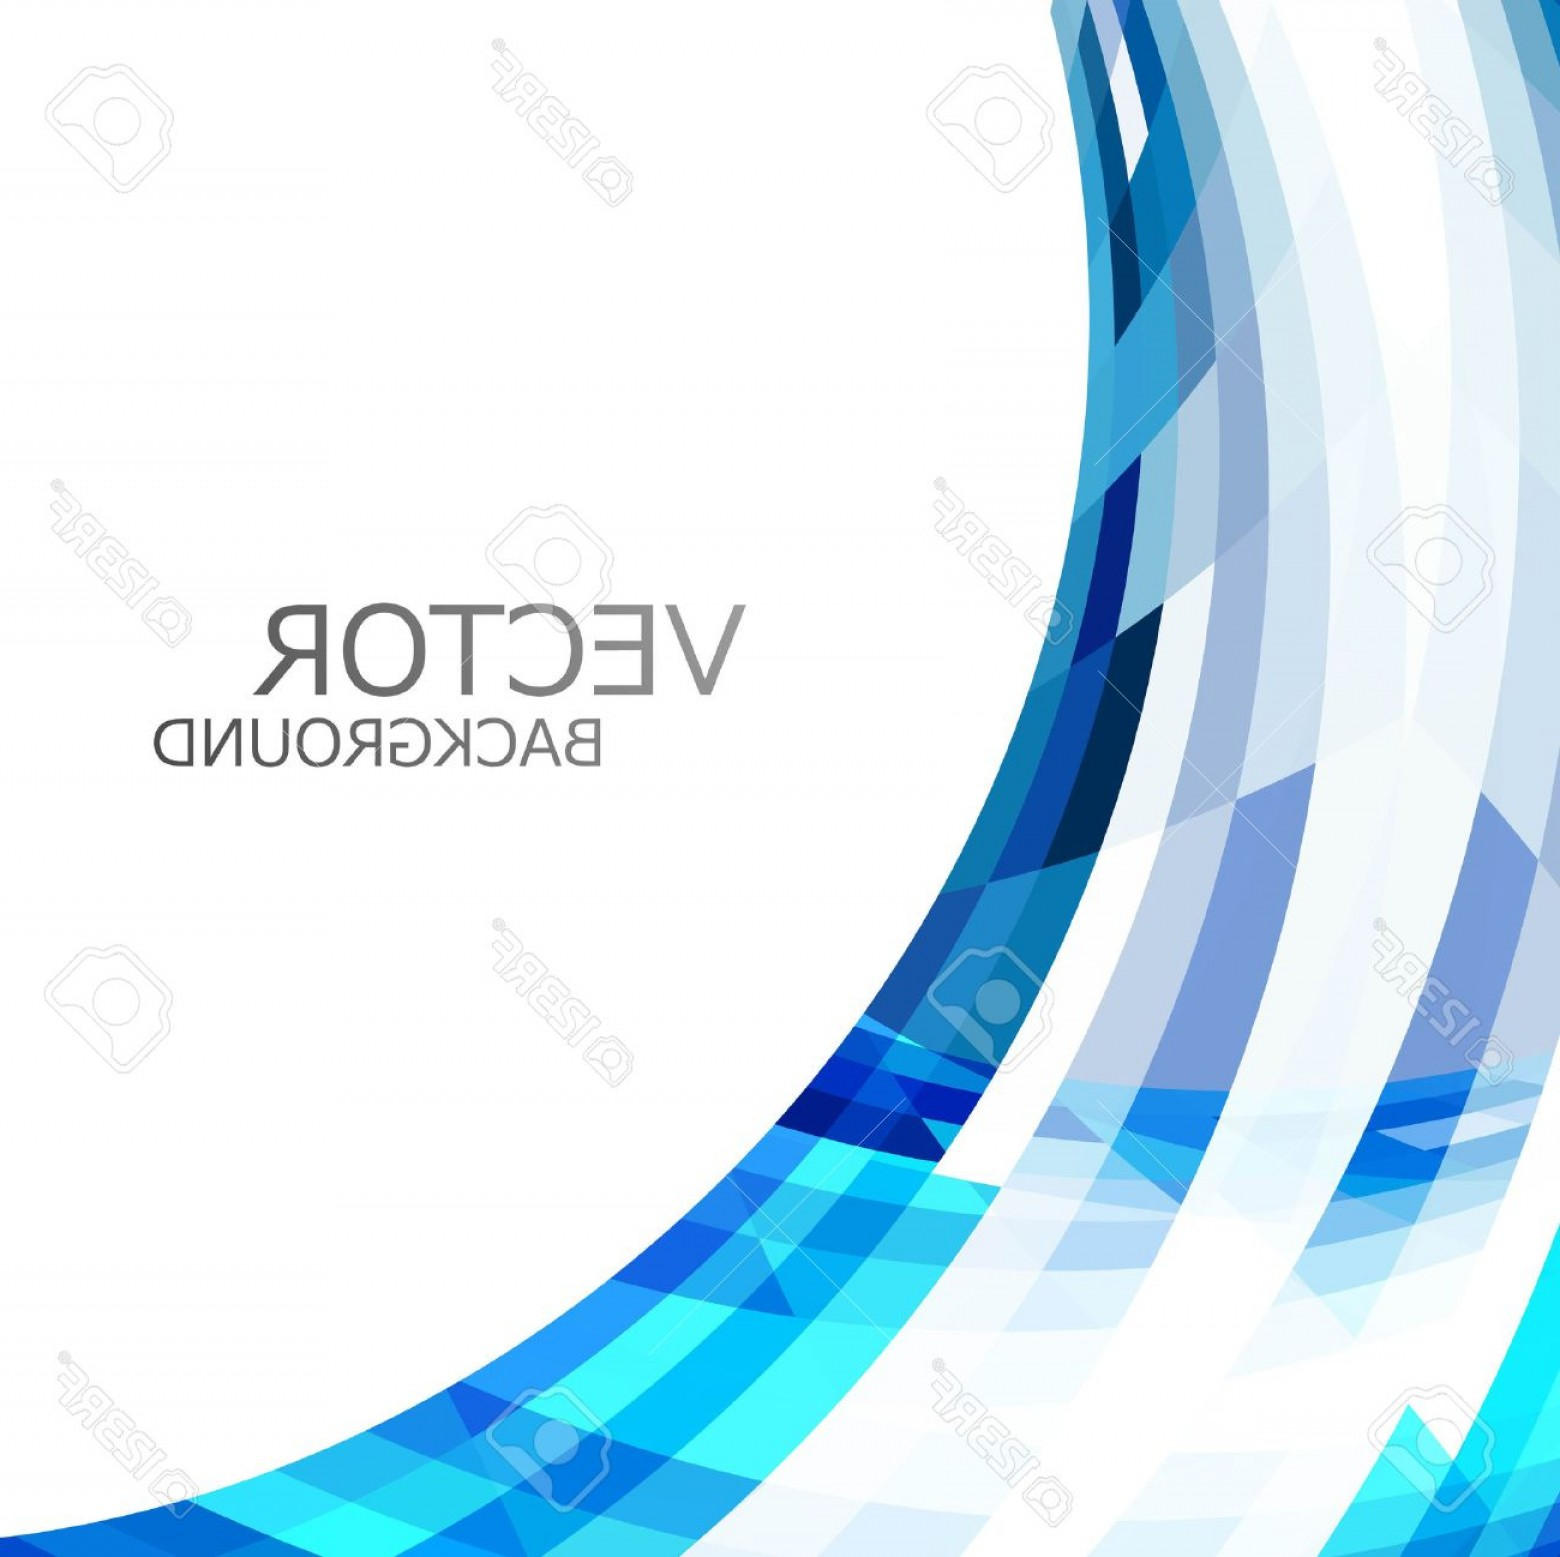 Blue With White Background Vector: Photoabstract Blue Colorful Stylish Wave Technology White Background Vector